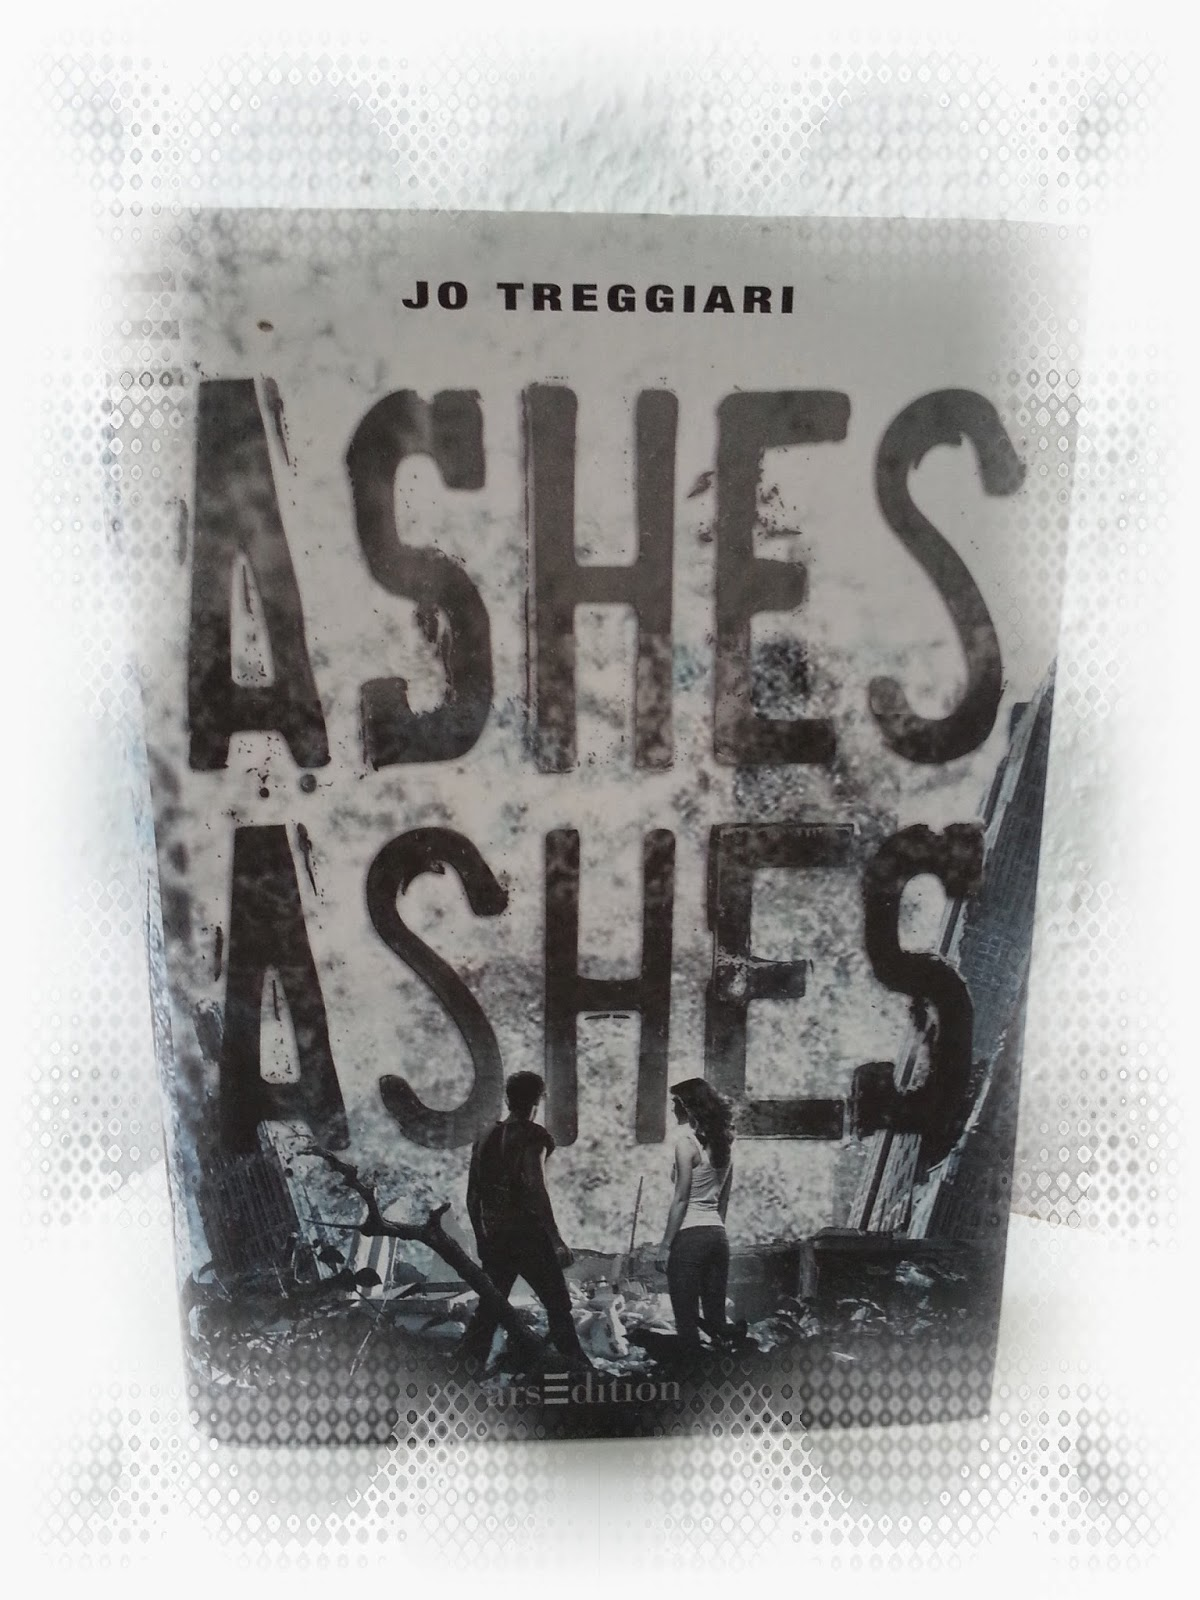 http://www.amazon.de/Ashes-Jo-Treggiari/dp/3760784712/ref=sr_1_1_bnp_1_har?s=books&ie=UTF8&qid=1399921995&sr=1-1&keywords=ashes+ashes